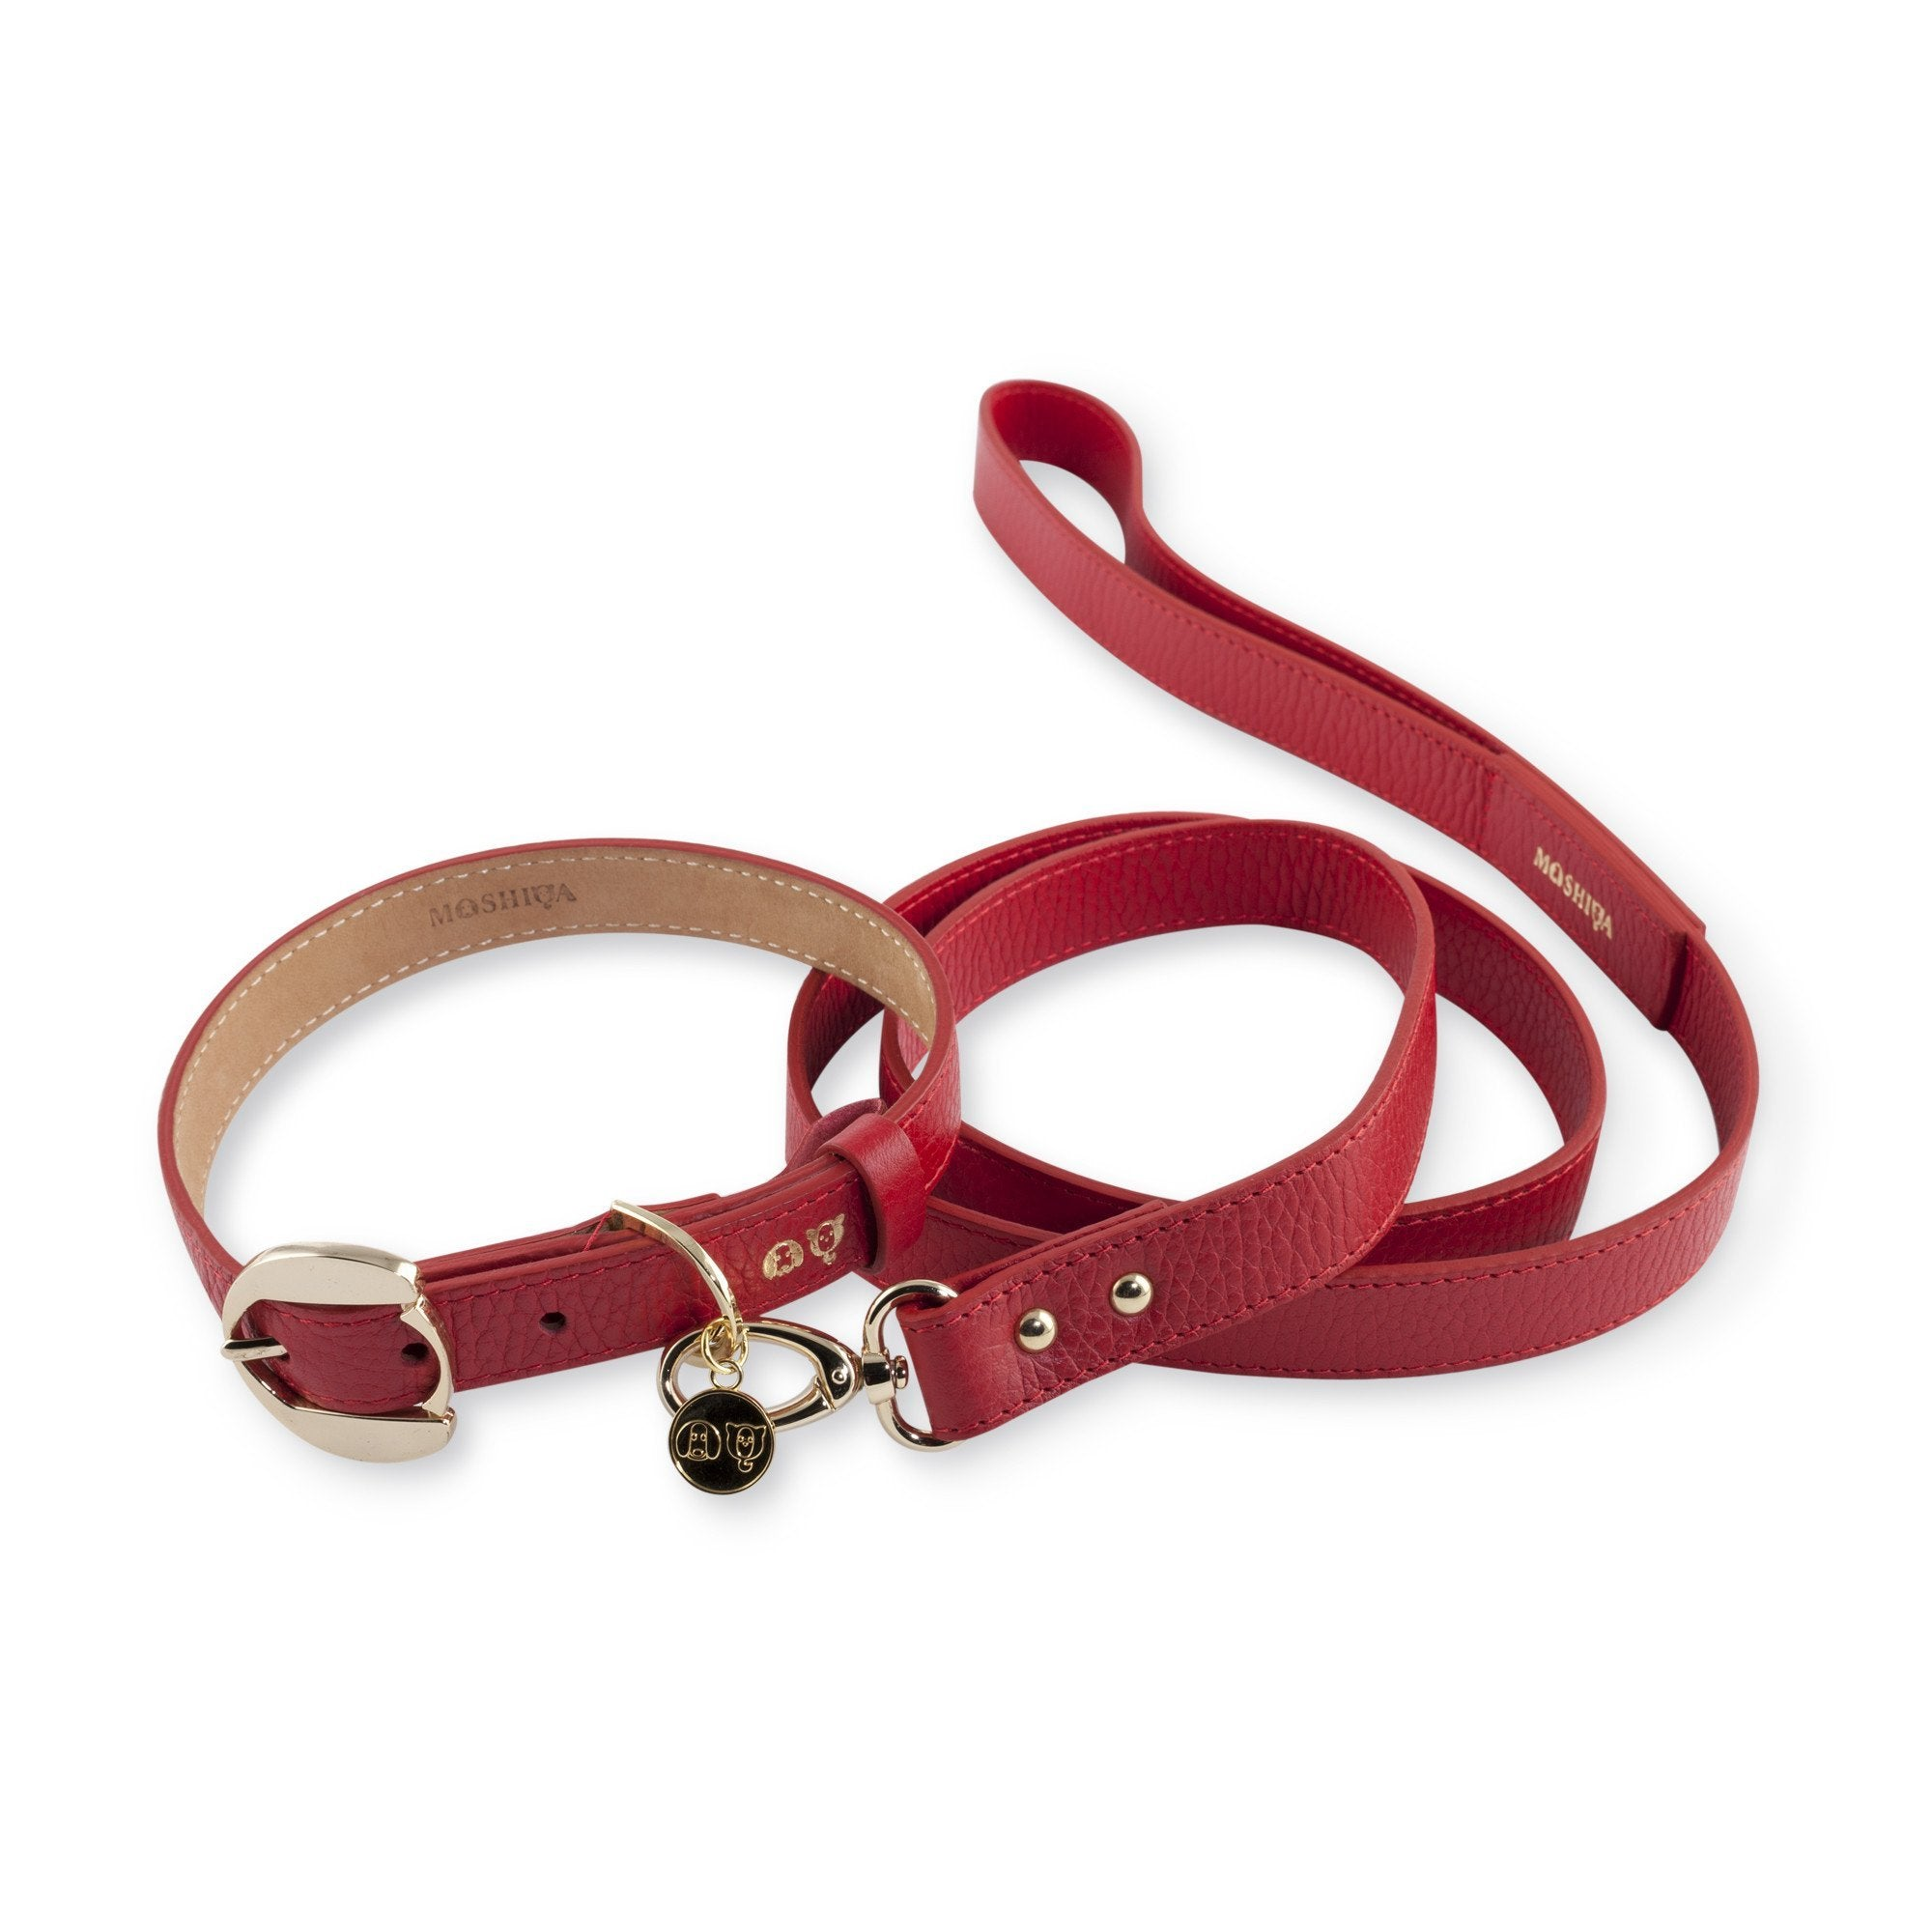 Moshiqa Red and Gold Leather Dog Collar and Lead